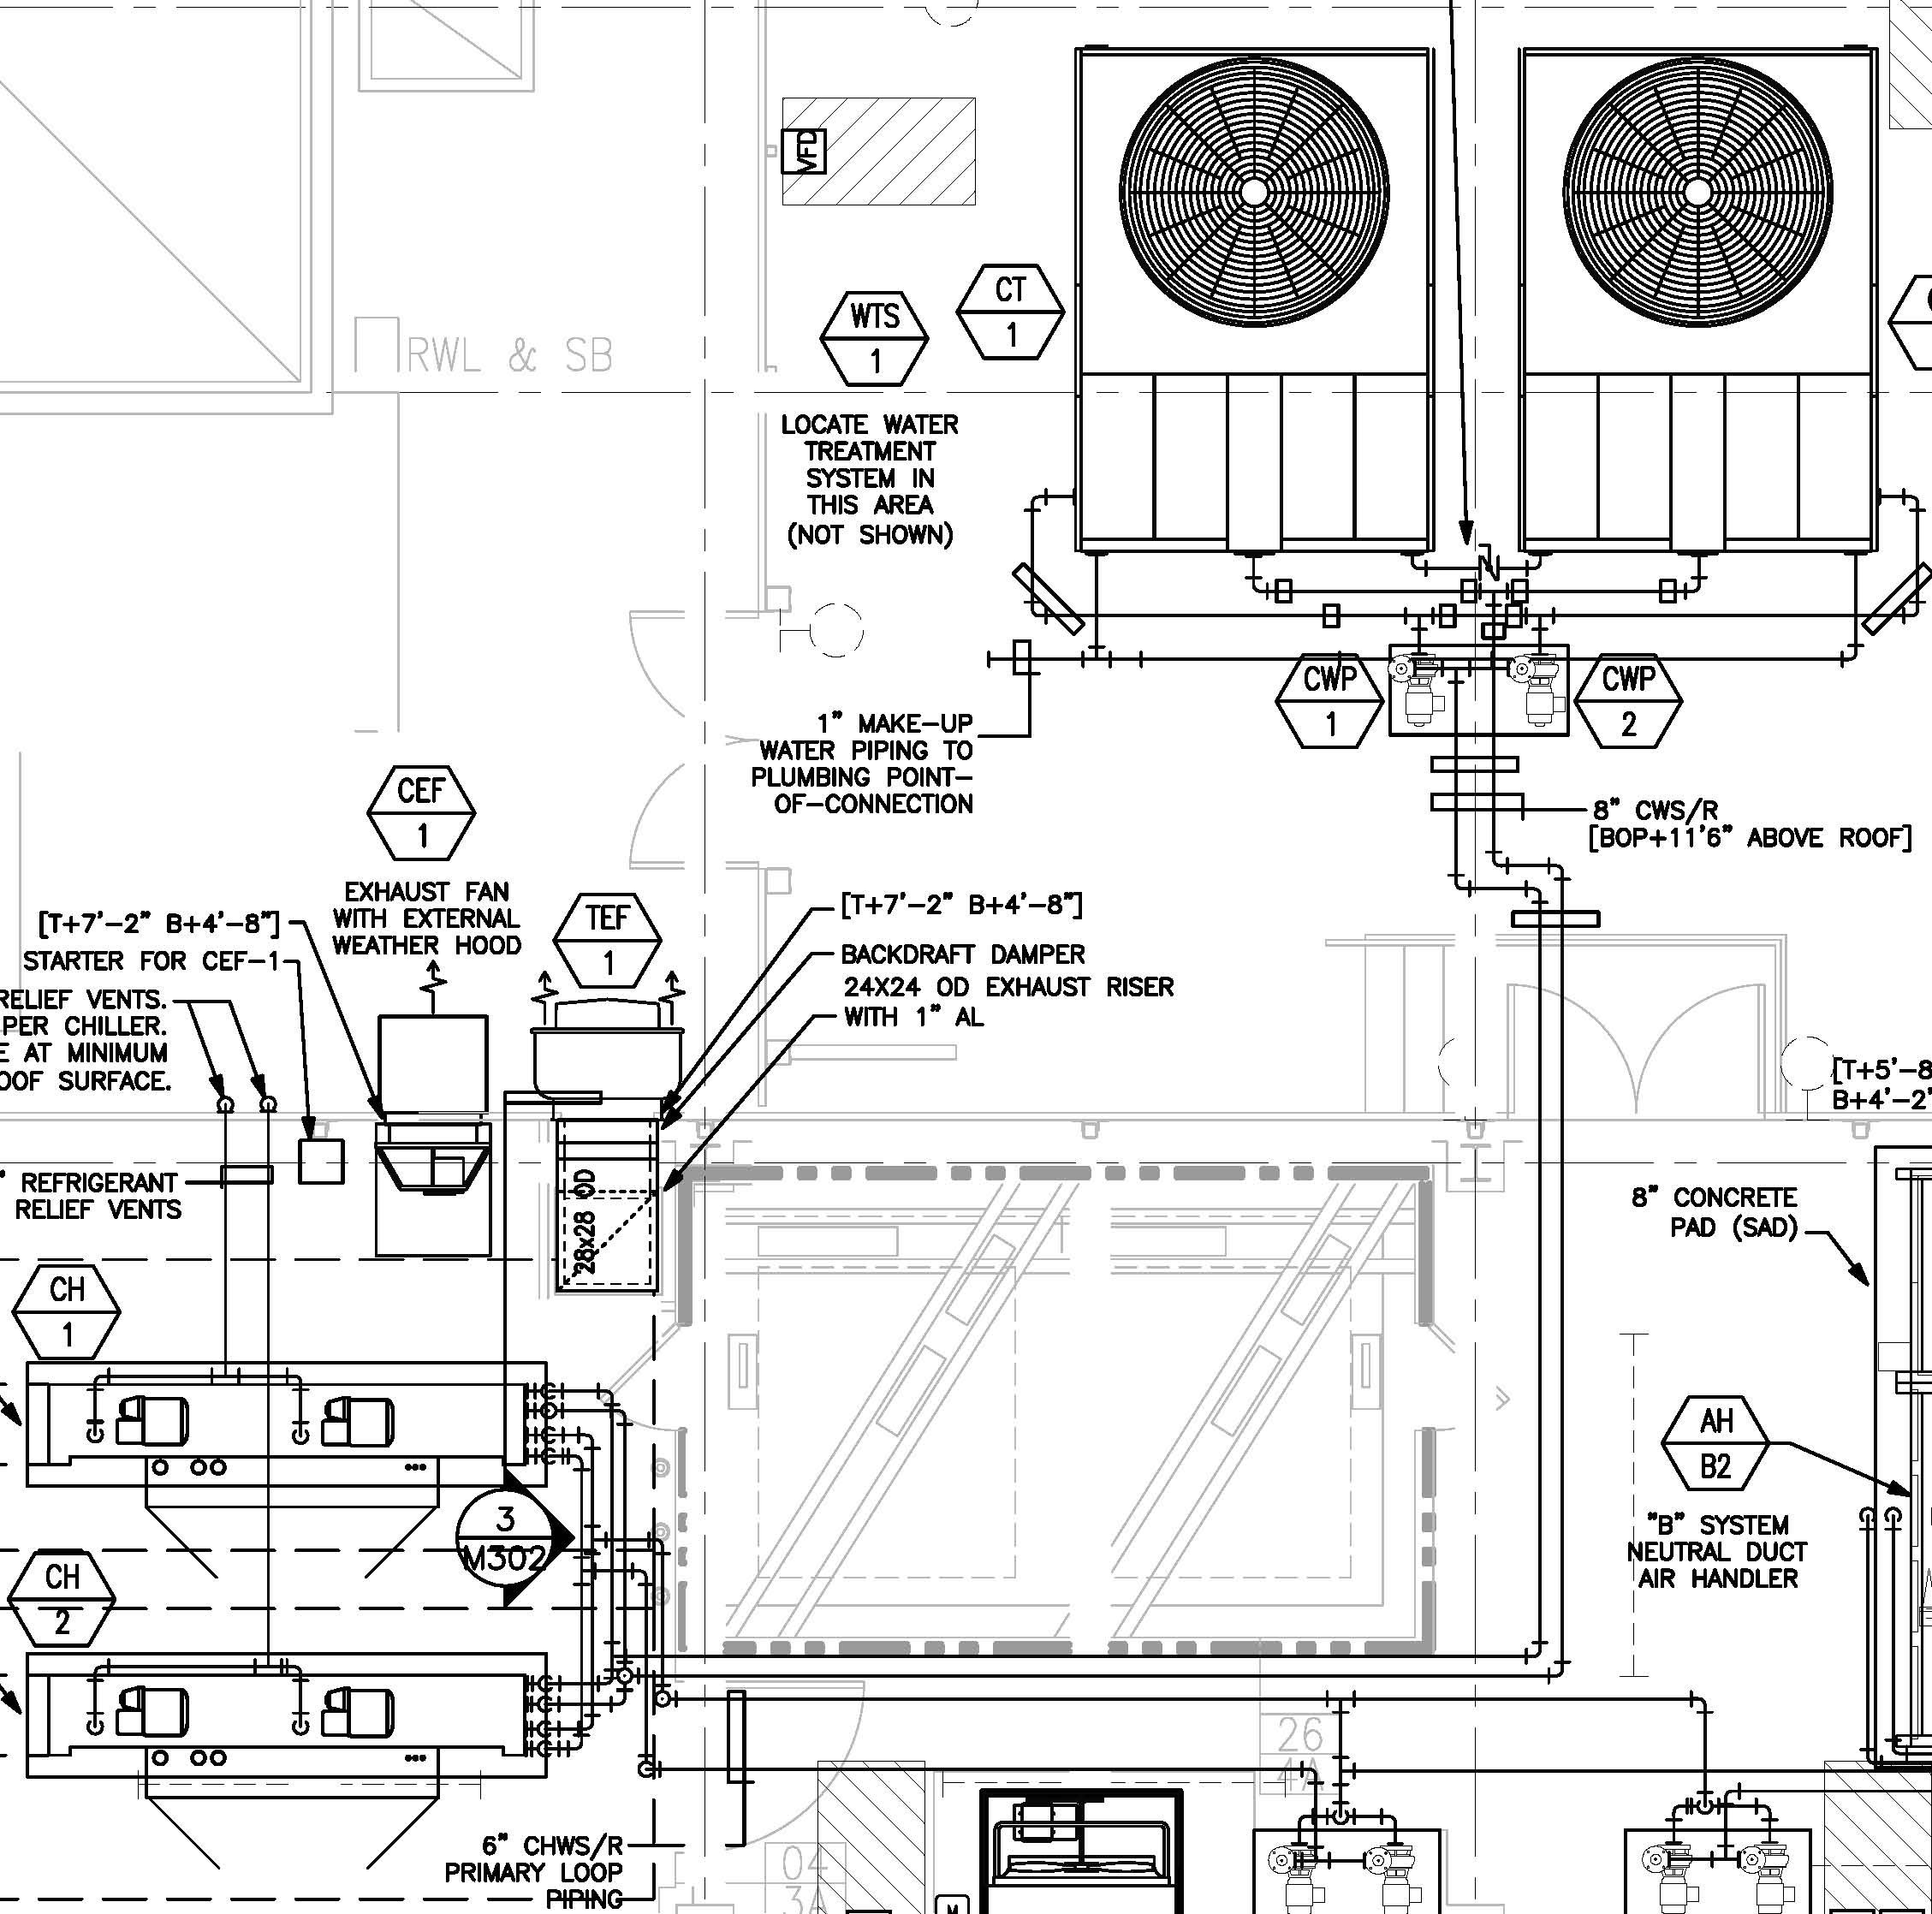 york air handler wiring diagram Collection-Wiring Diagram for York Air Conditioner Best Package Air Conditioning Unit Wiring Diagram New Unique York 16-m